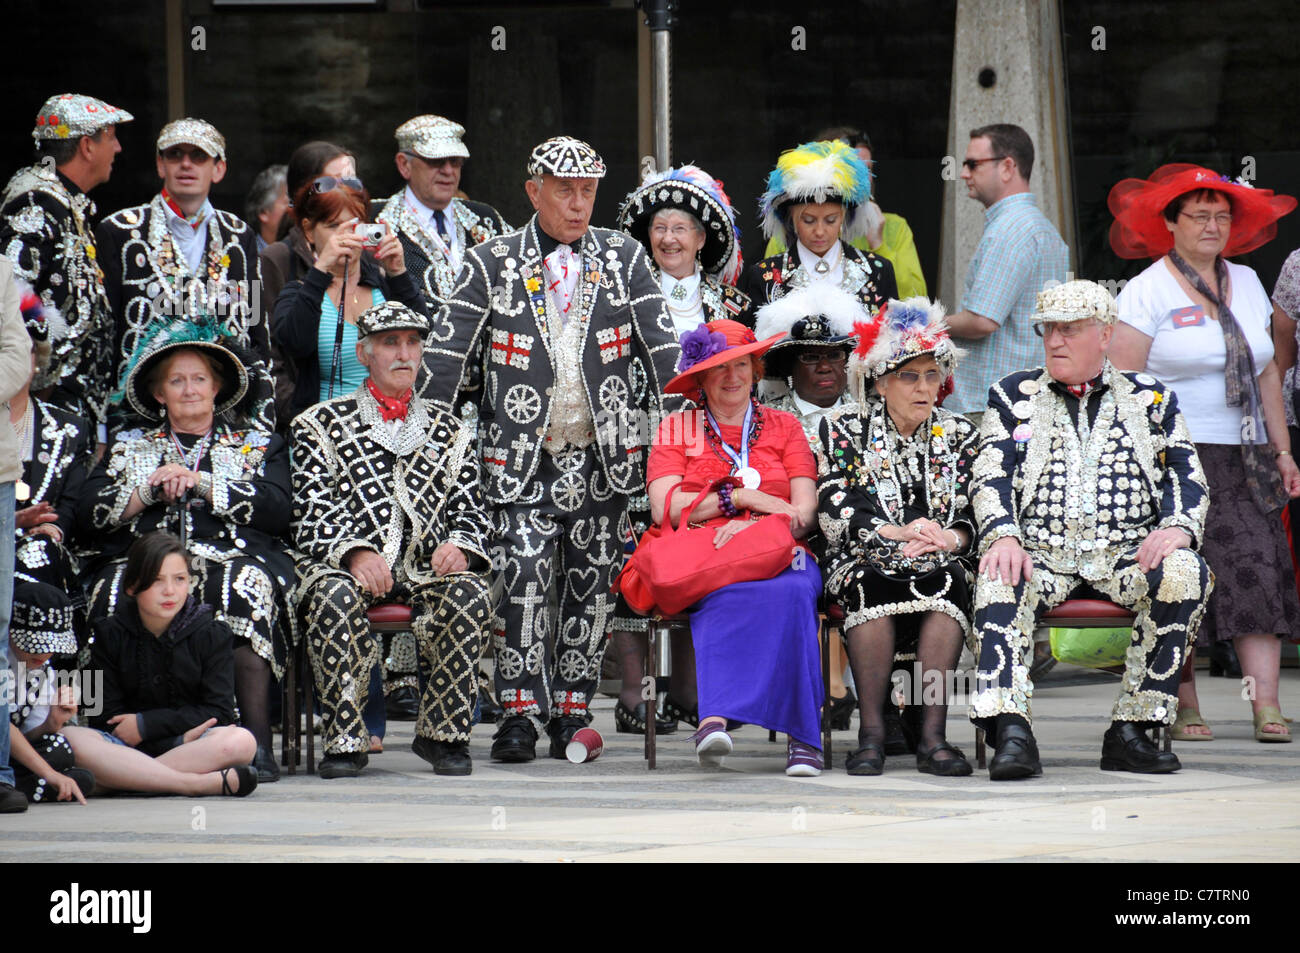 Pearly Kings and Queens Guildhall Harvest Festival 2011 - Stock Image